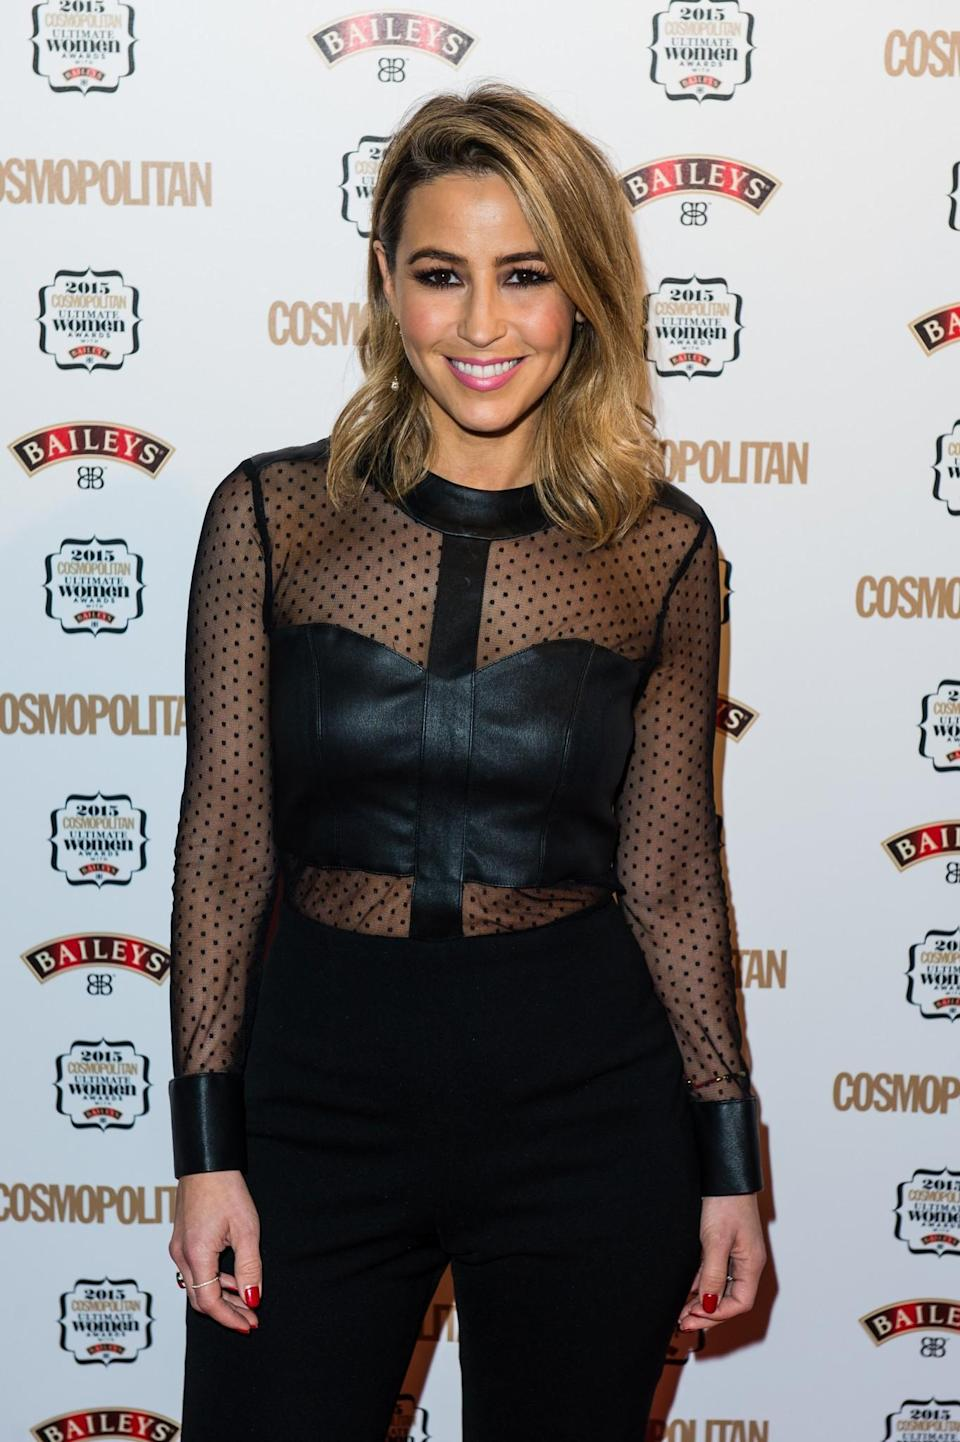 <p>Now: Since then Rachel has appeared on Strictly Come Dancing, completed a S Club 7 reunion tour and been named one of FHM's sexiest woman of all time – not bad. [Photo: Getty] </p>